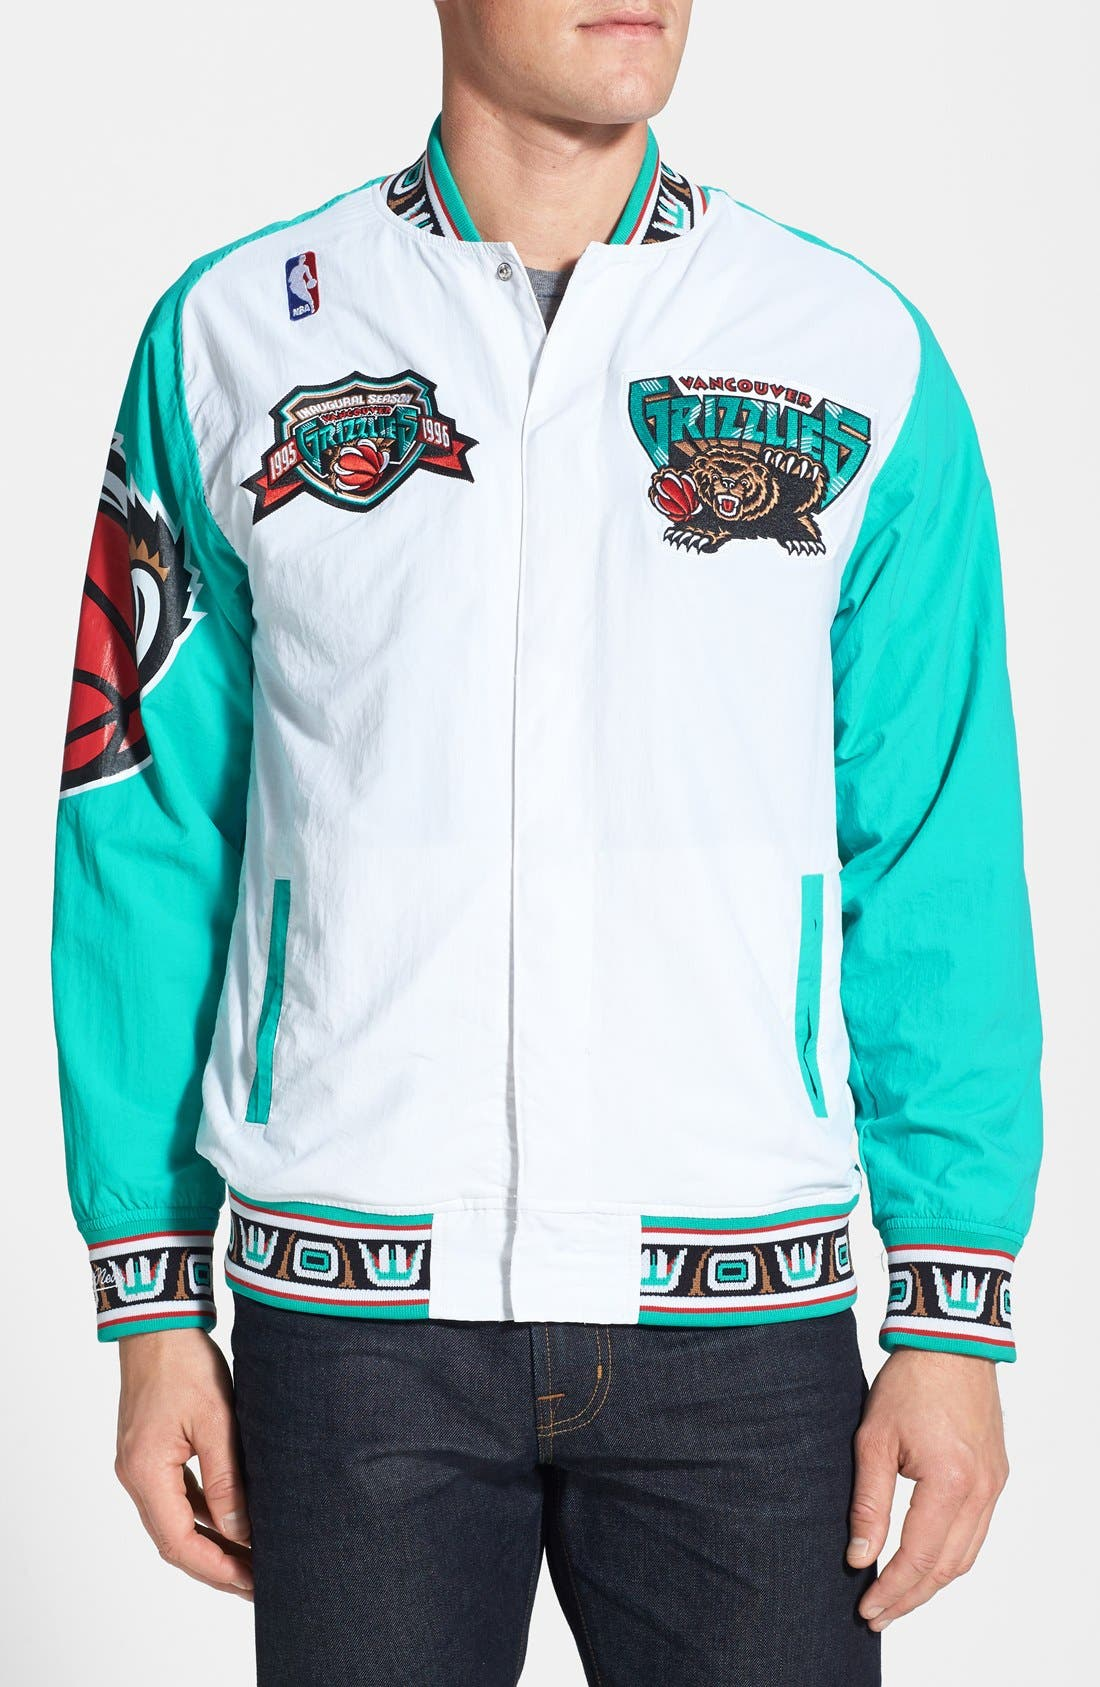 Alternate Image 1 Selected - Mitchell & Ness 'Vancouver Grizzlies' Tailored Fit Warm-Up Jacket